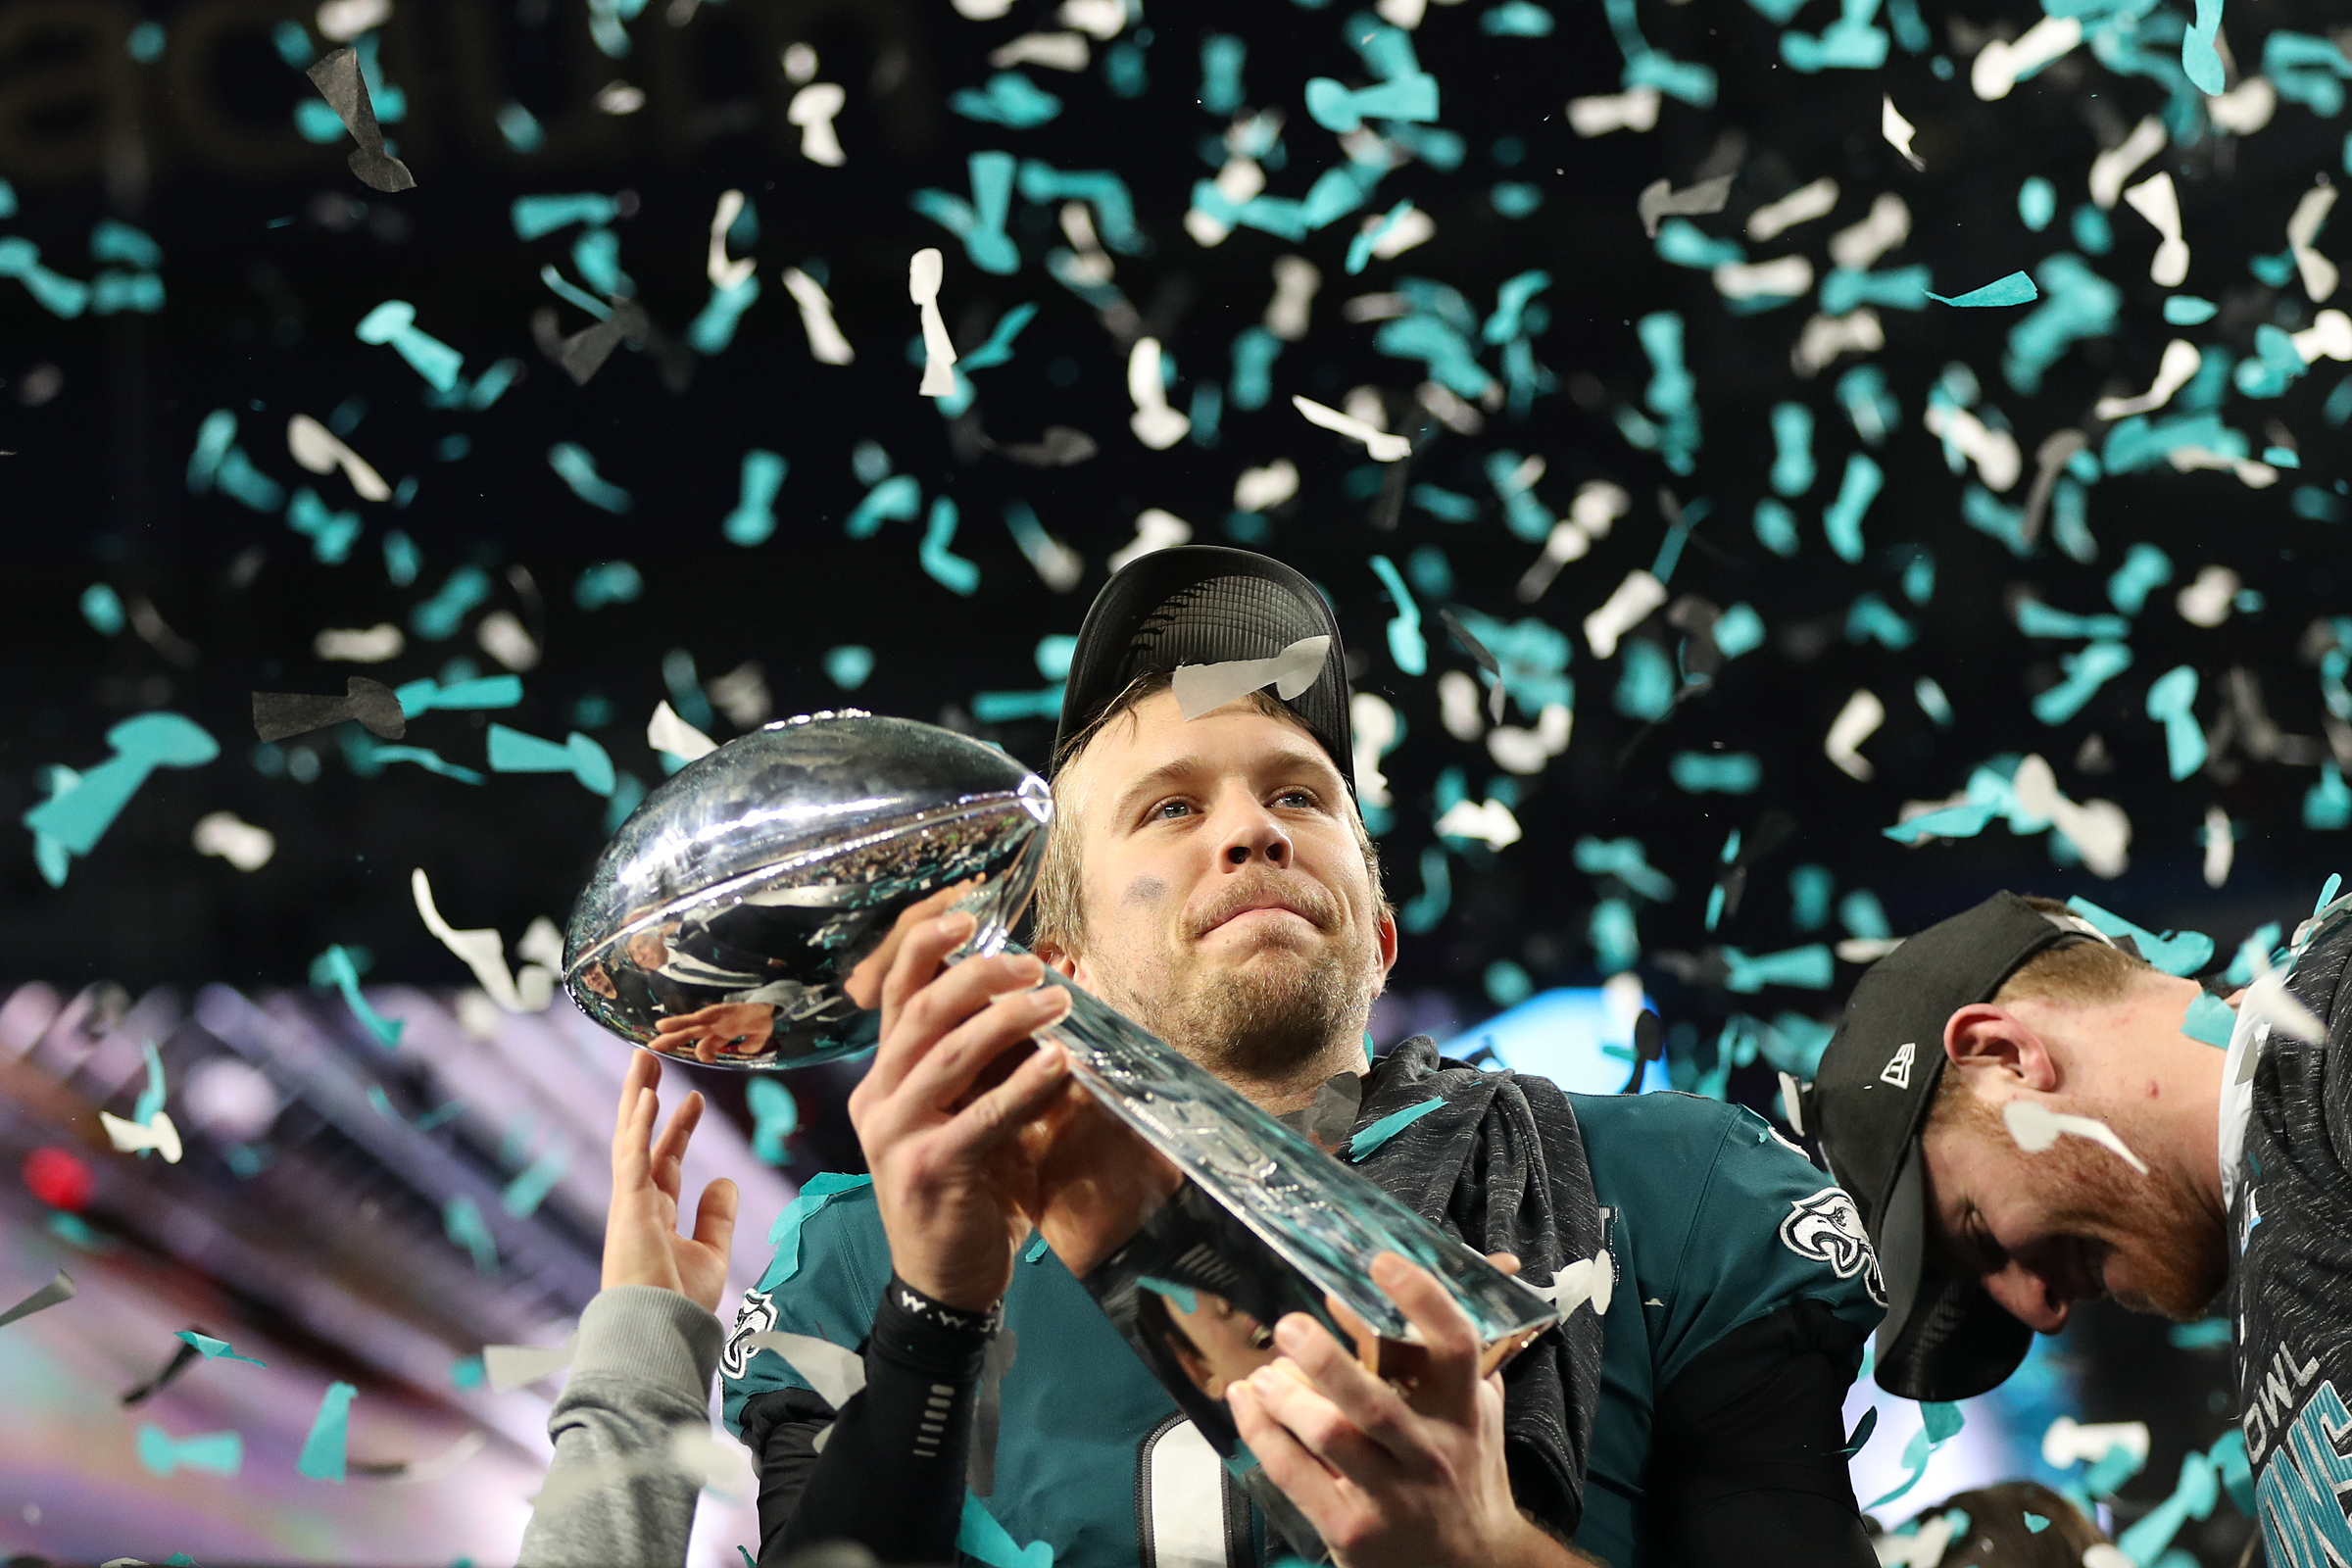 Eagles quarterback Nick Foles holds up the Lombardi trophy after Super Bowl LII, at U.S. Bank Stadium in Minneapolis, Minnesota, Sunday, Feb. 4, 2018. The Eagles won 41-33.